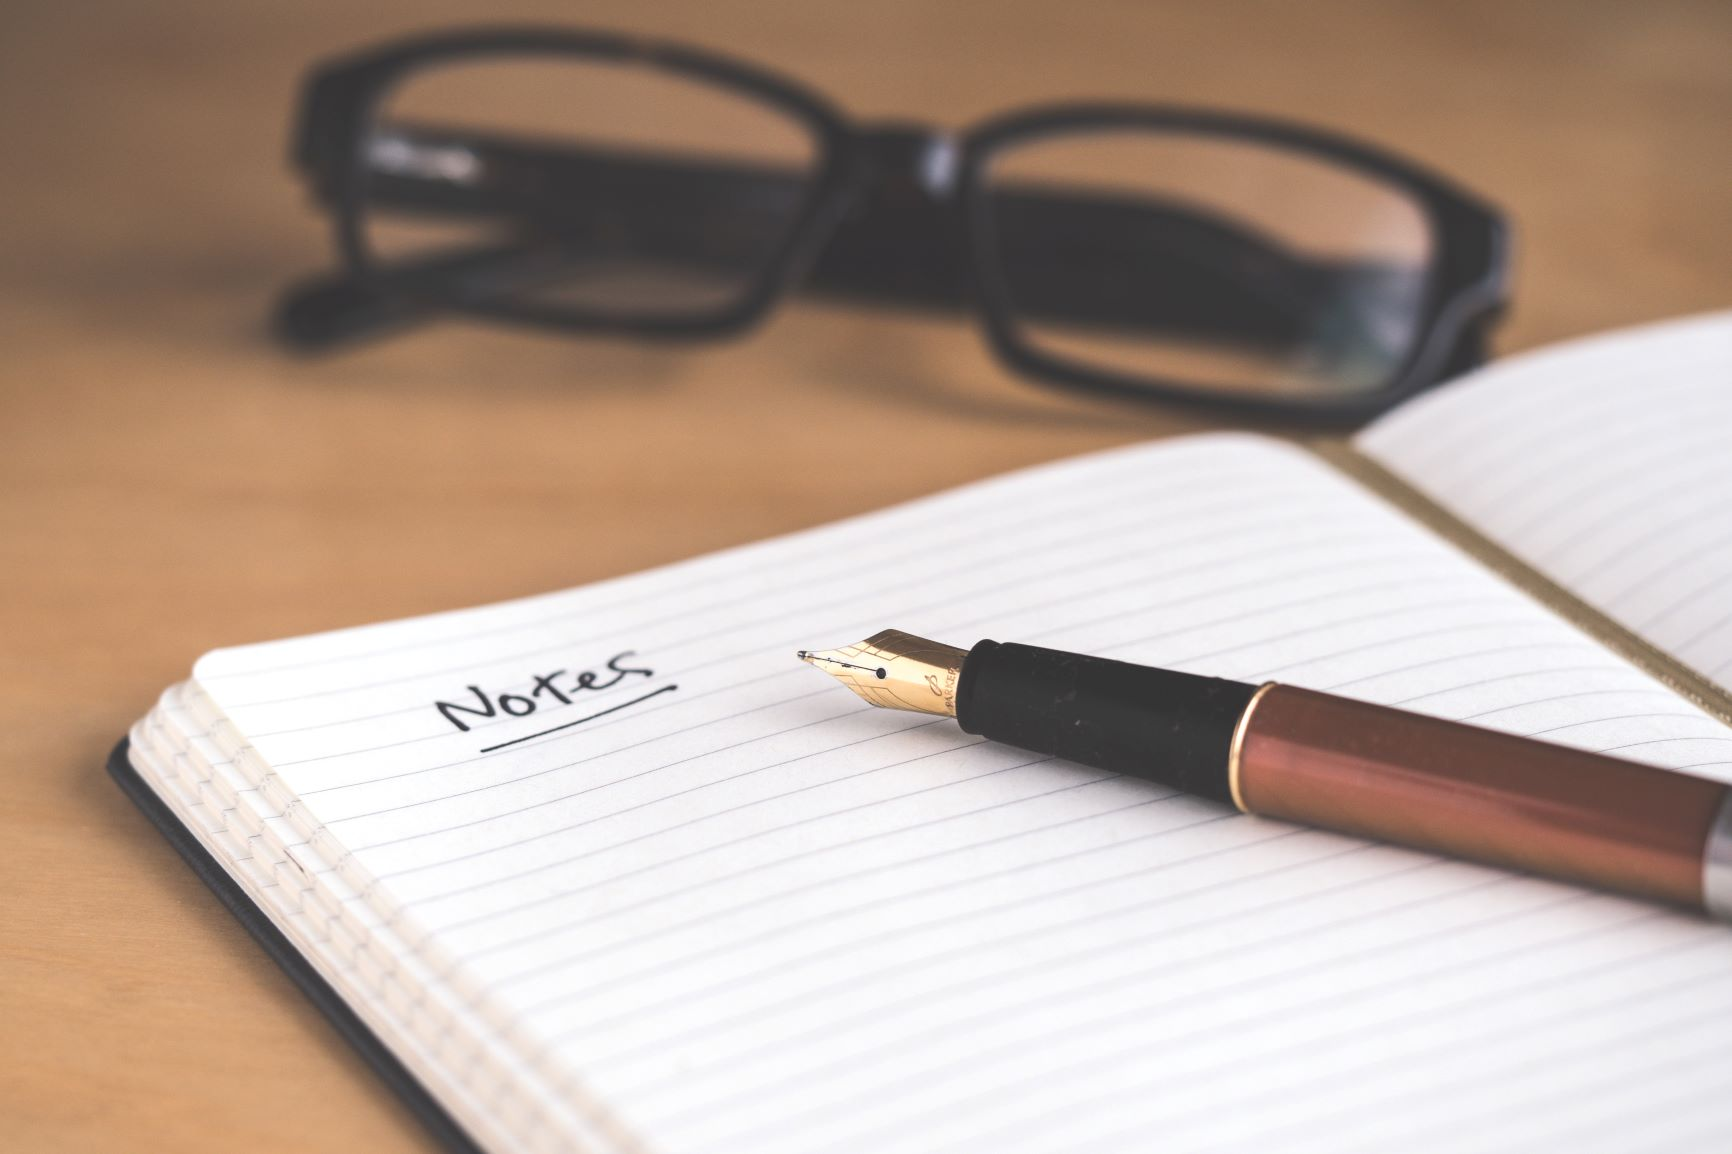 Glasses and open notepad and pen sitting on desk